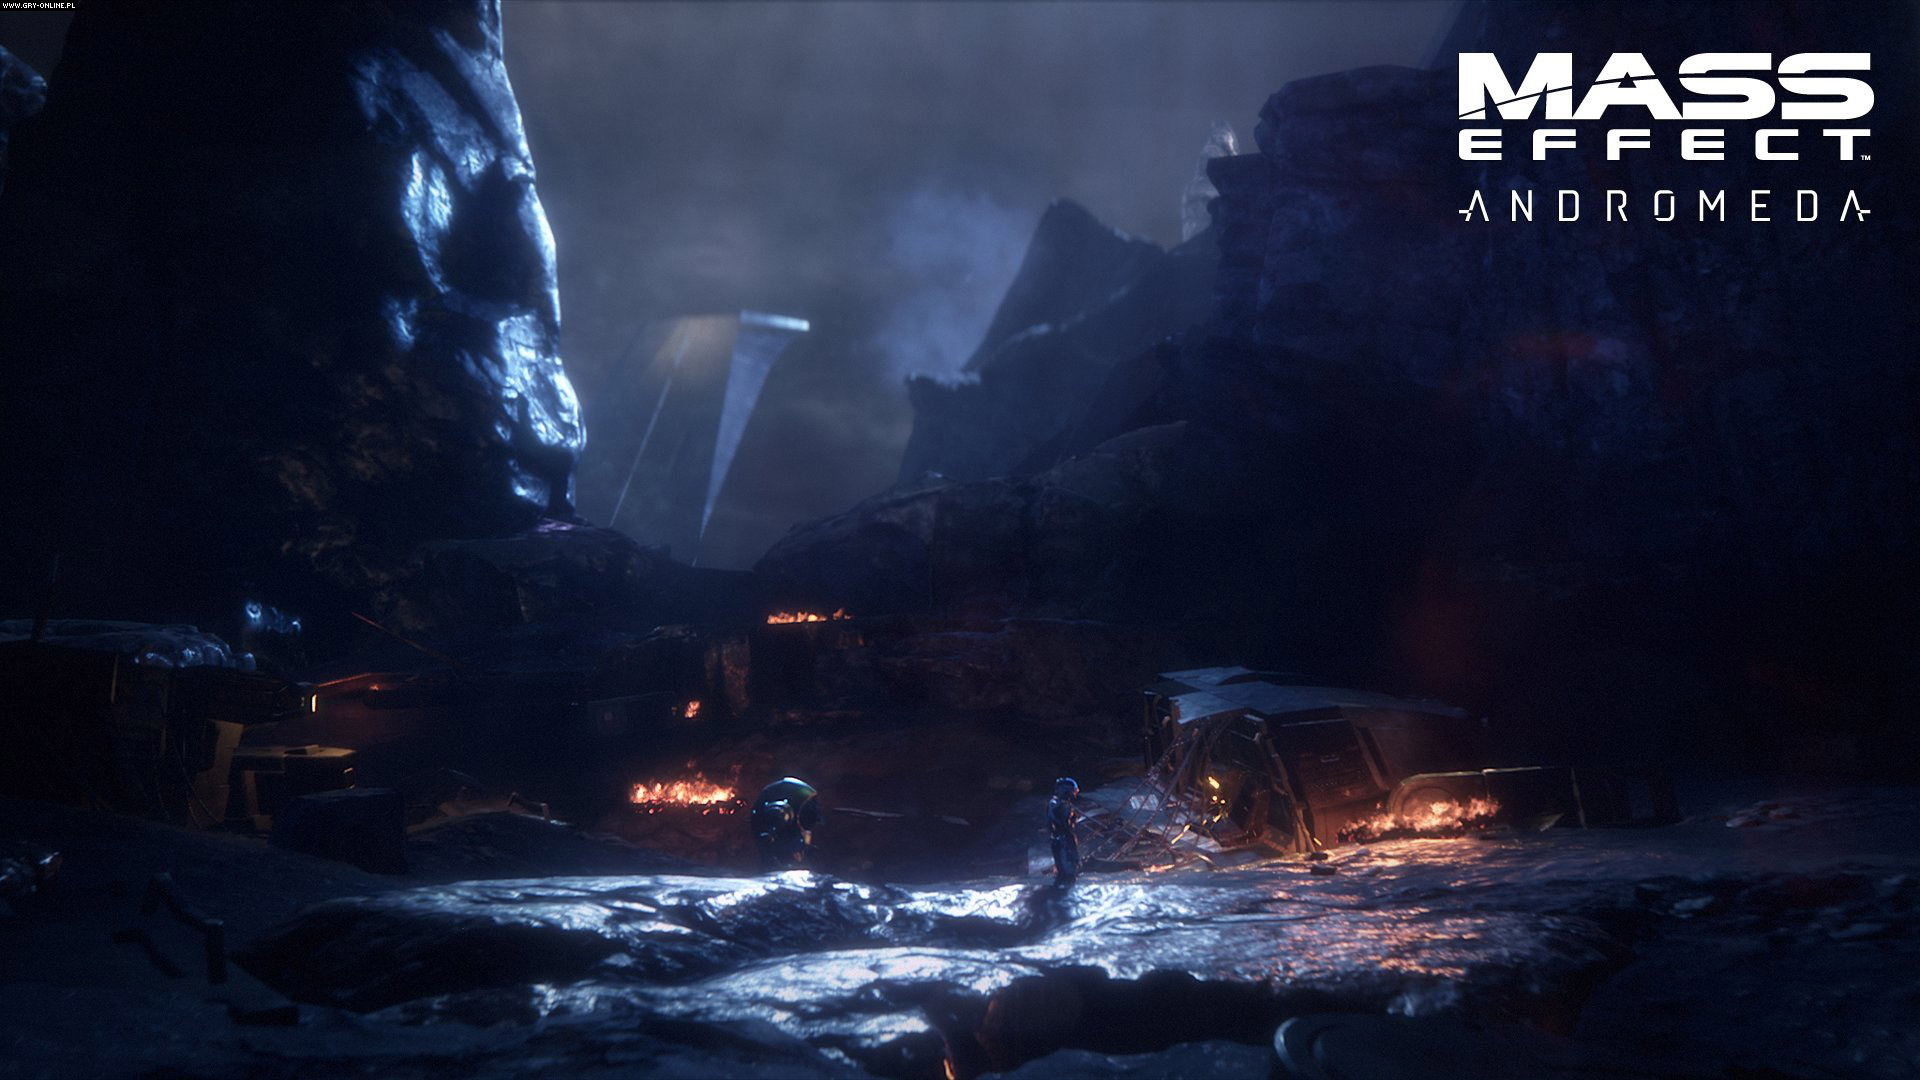 Mass Effect Andromeda Wallpaper 9